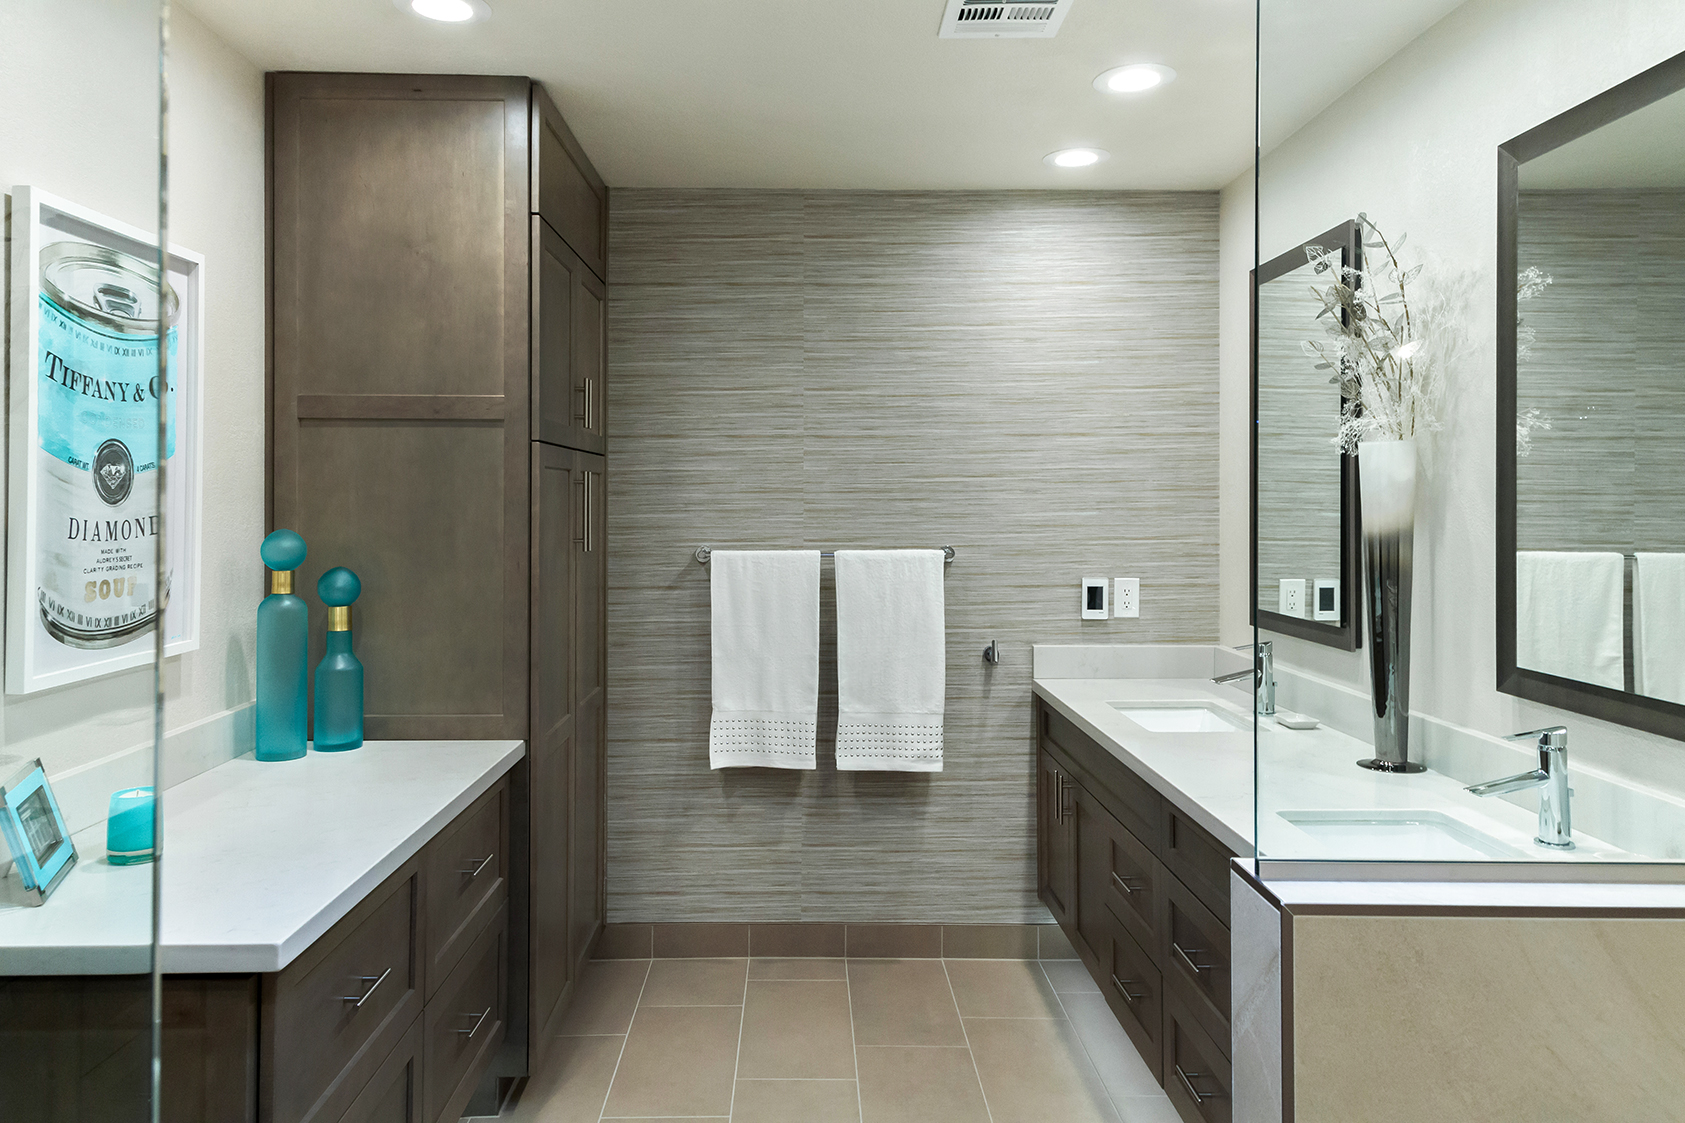 Signature Kitchen & Bath Remodeling | Building Permits Filed ...